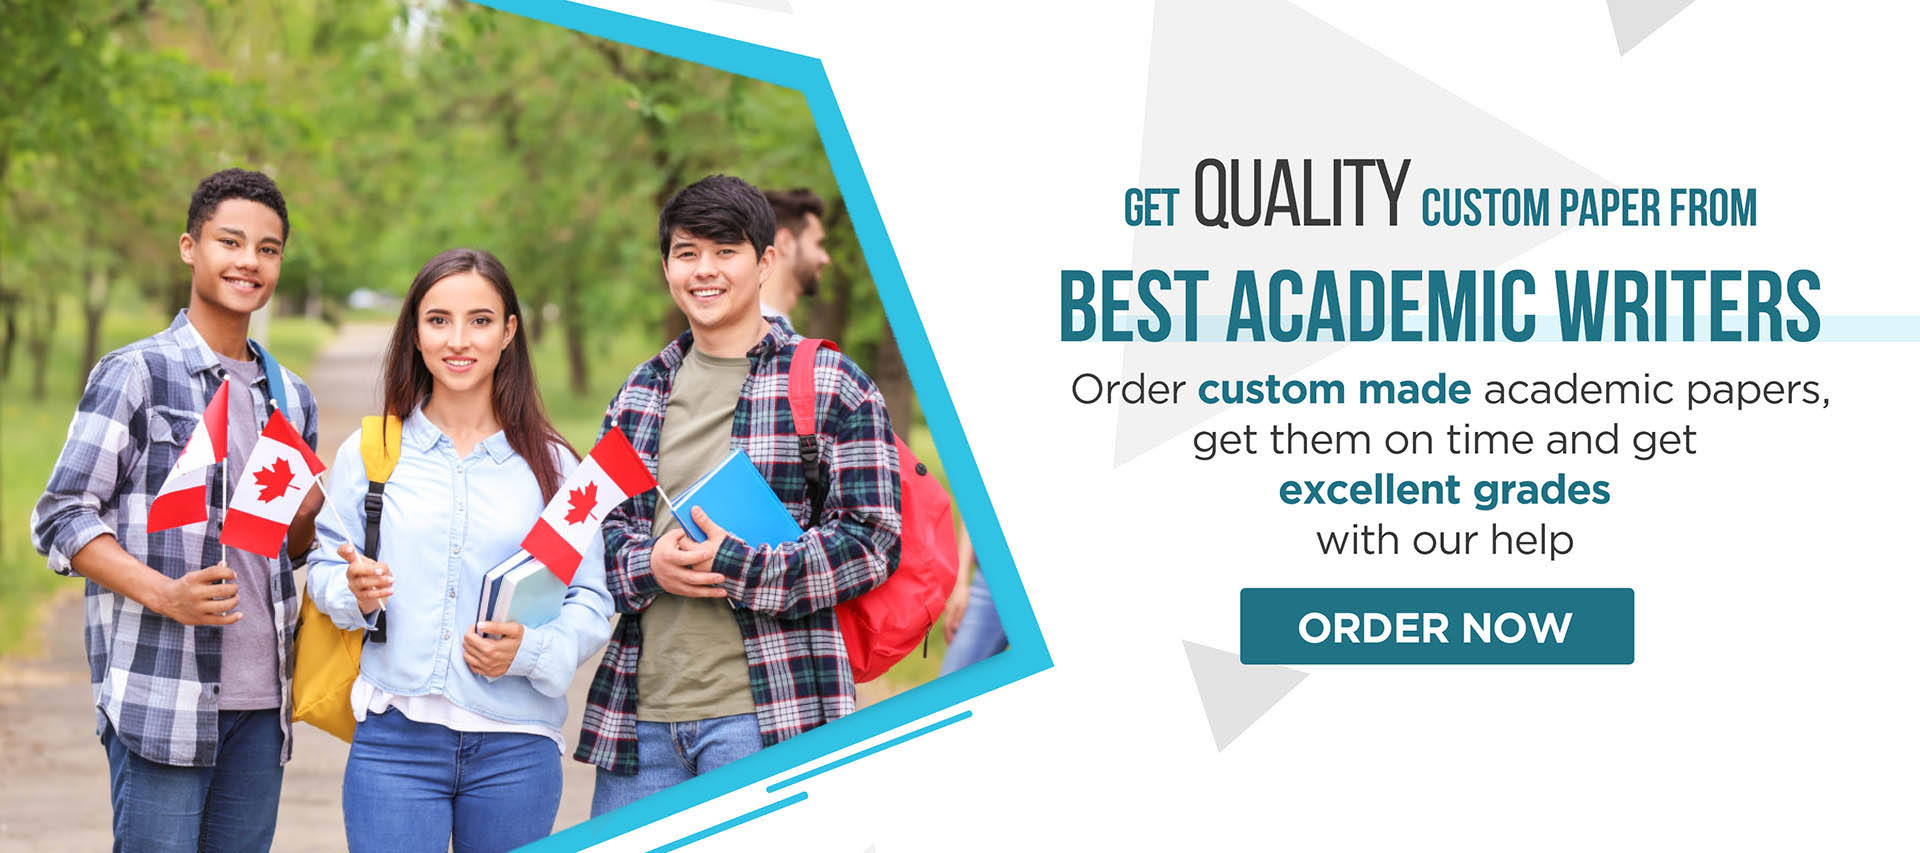 Get quality Custom Paper from Best academic Writers